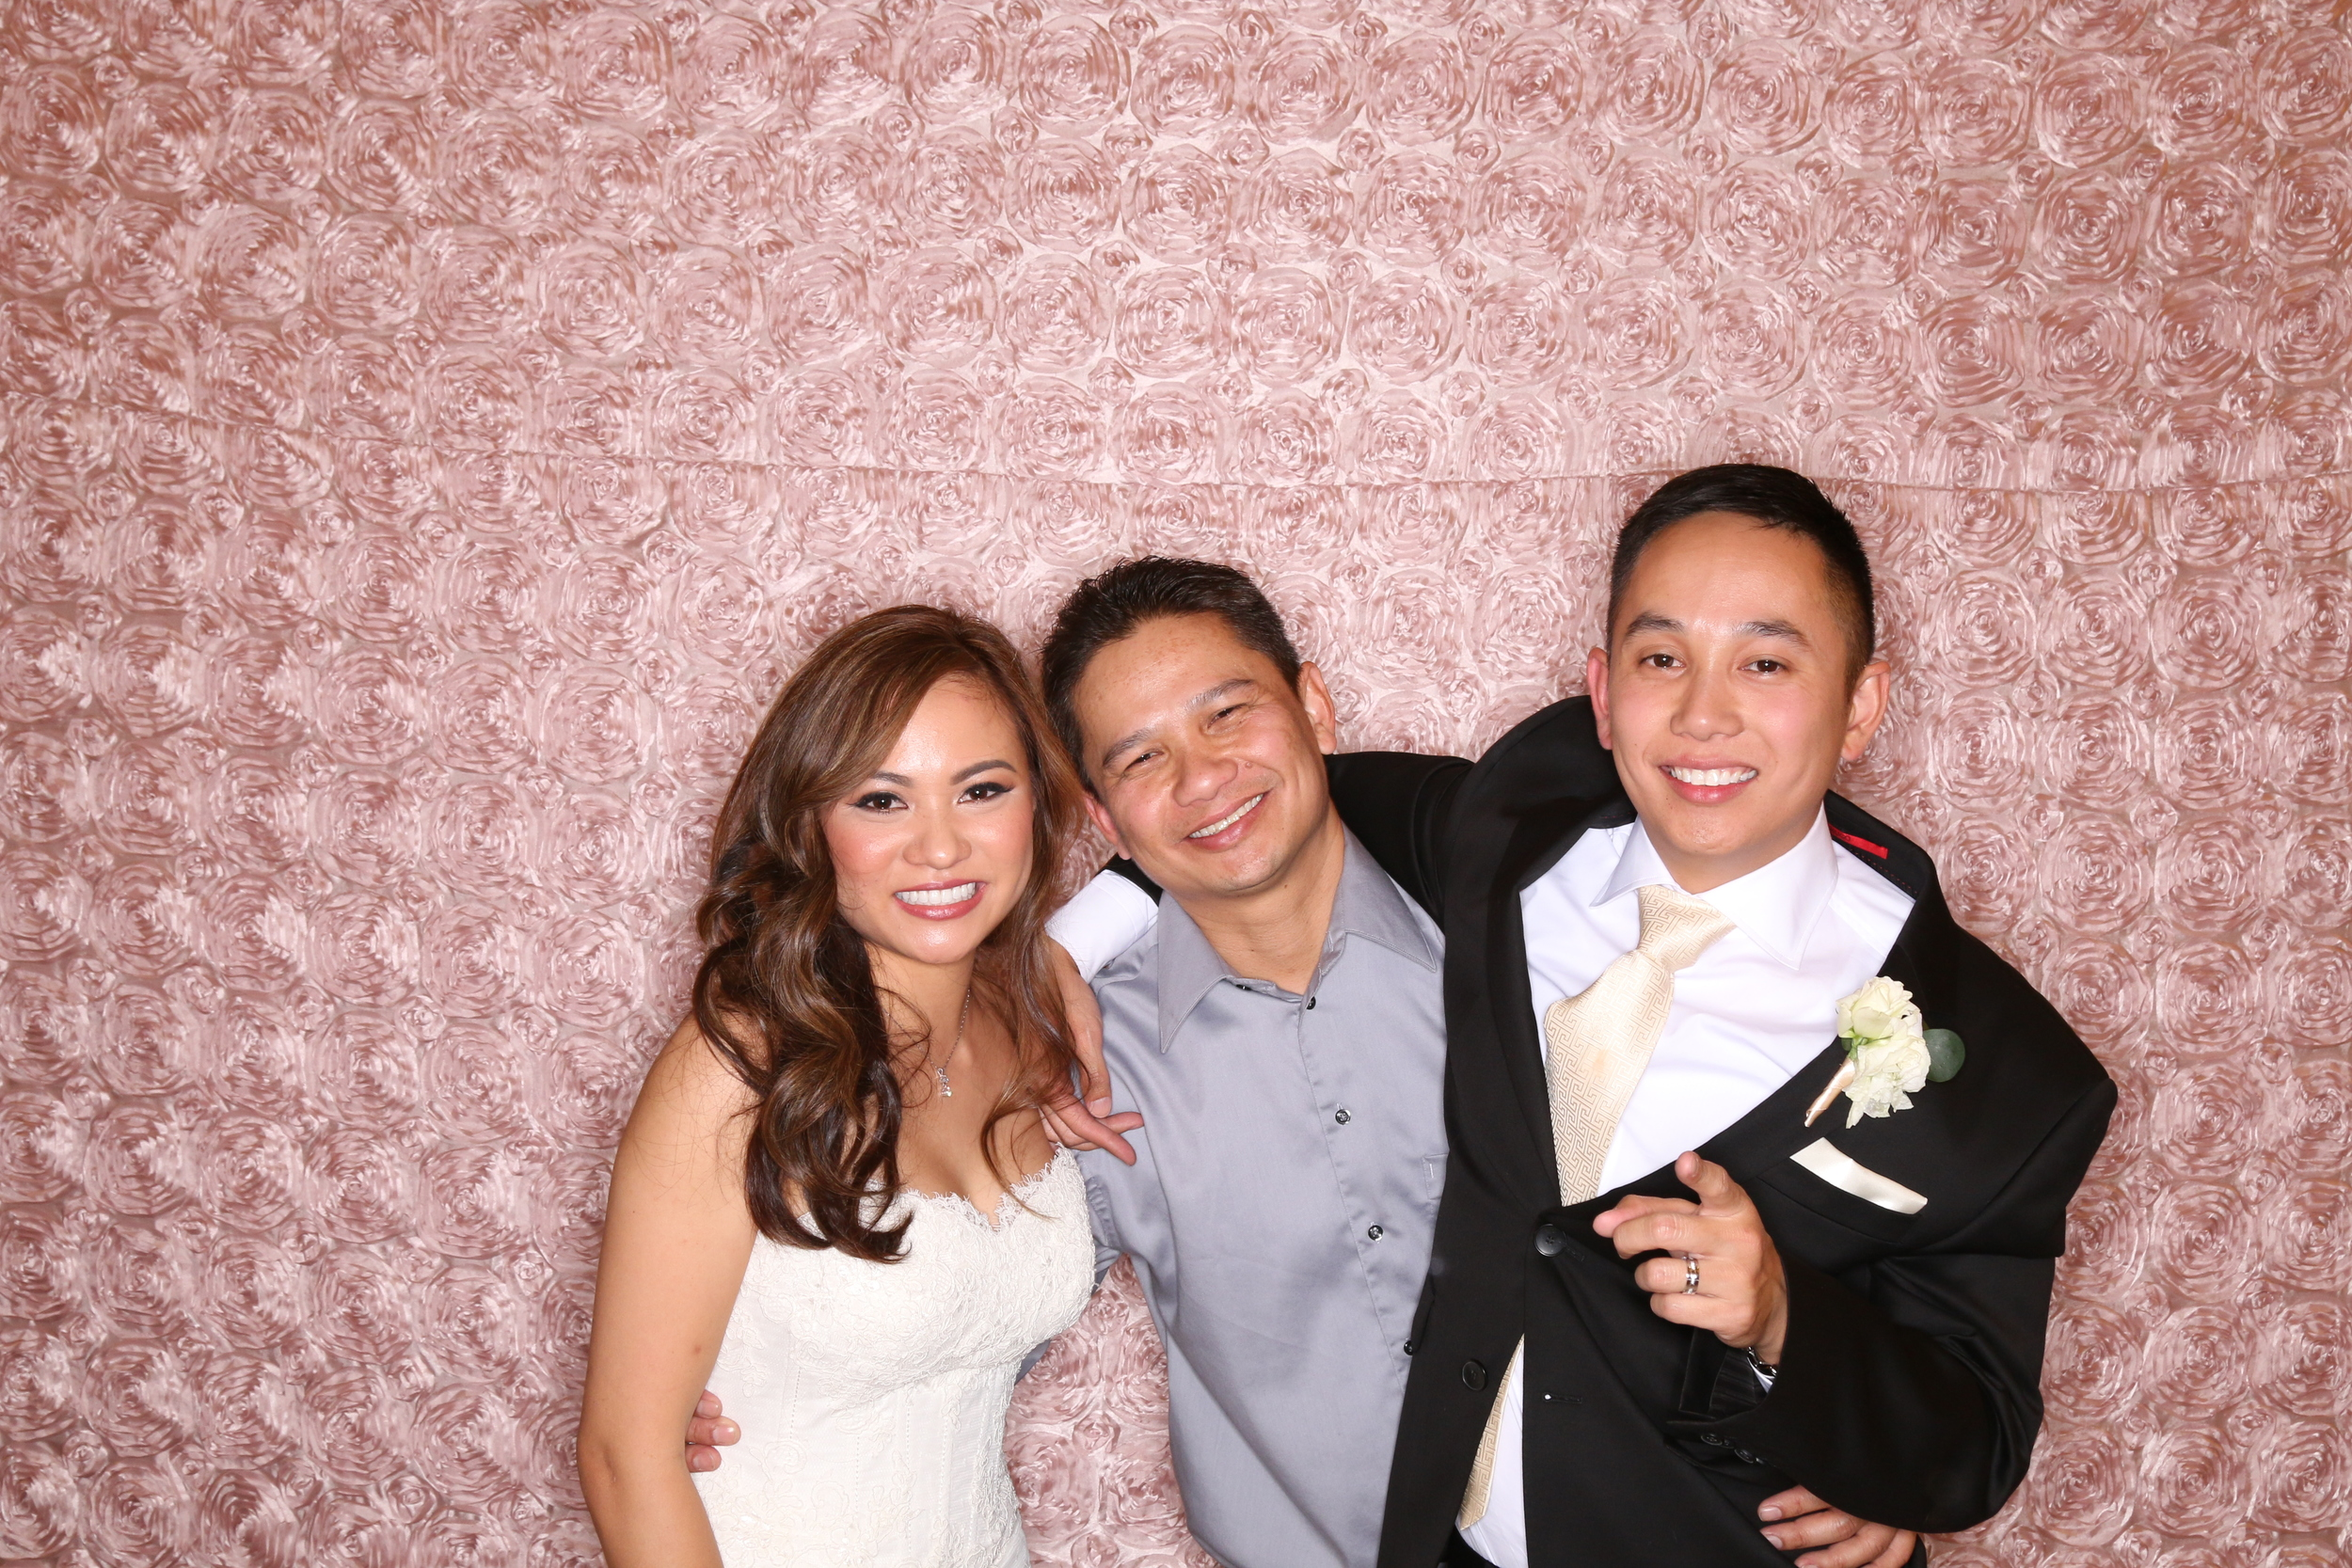 Kathy and Patrick's Wedding Gallery 2